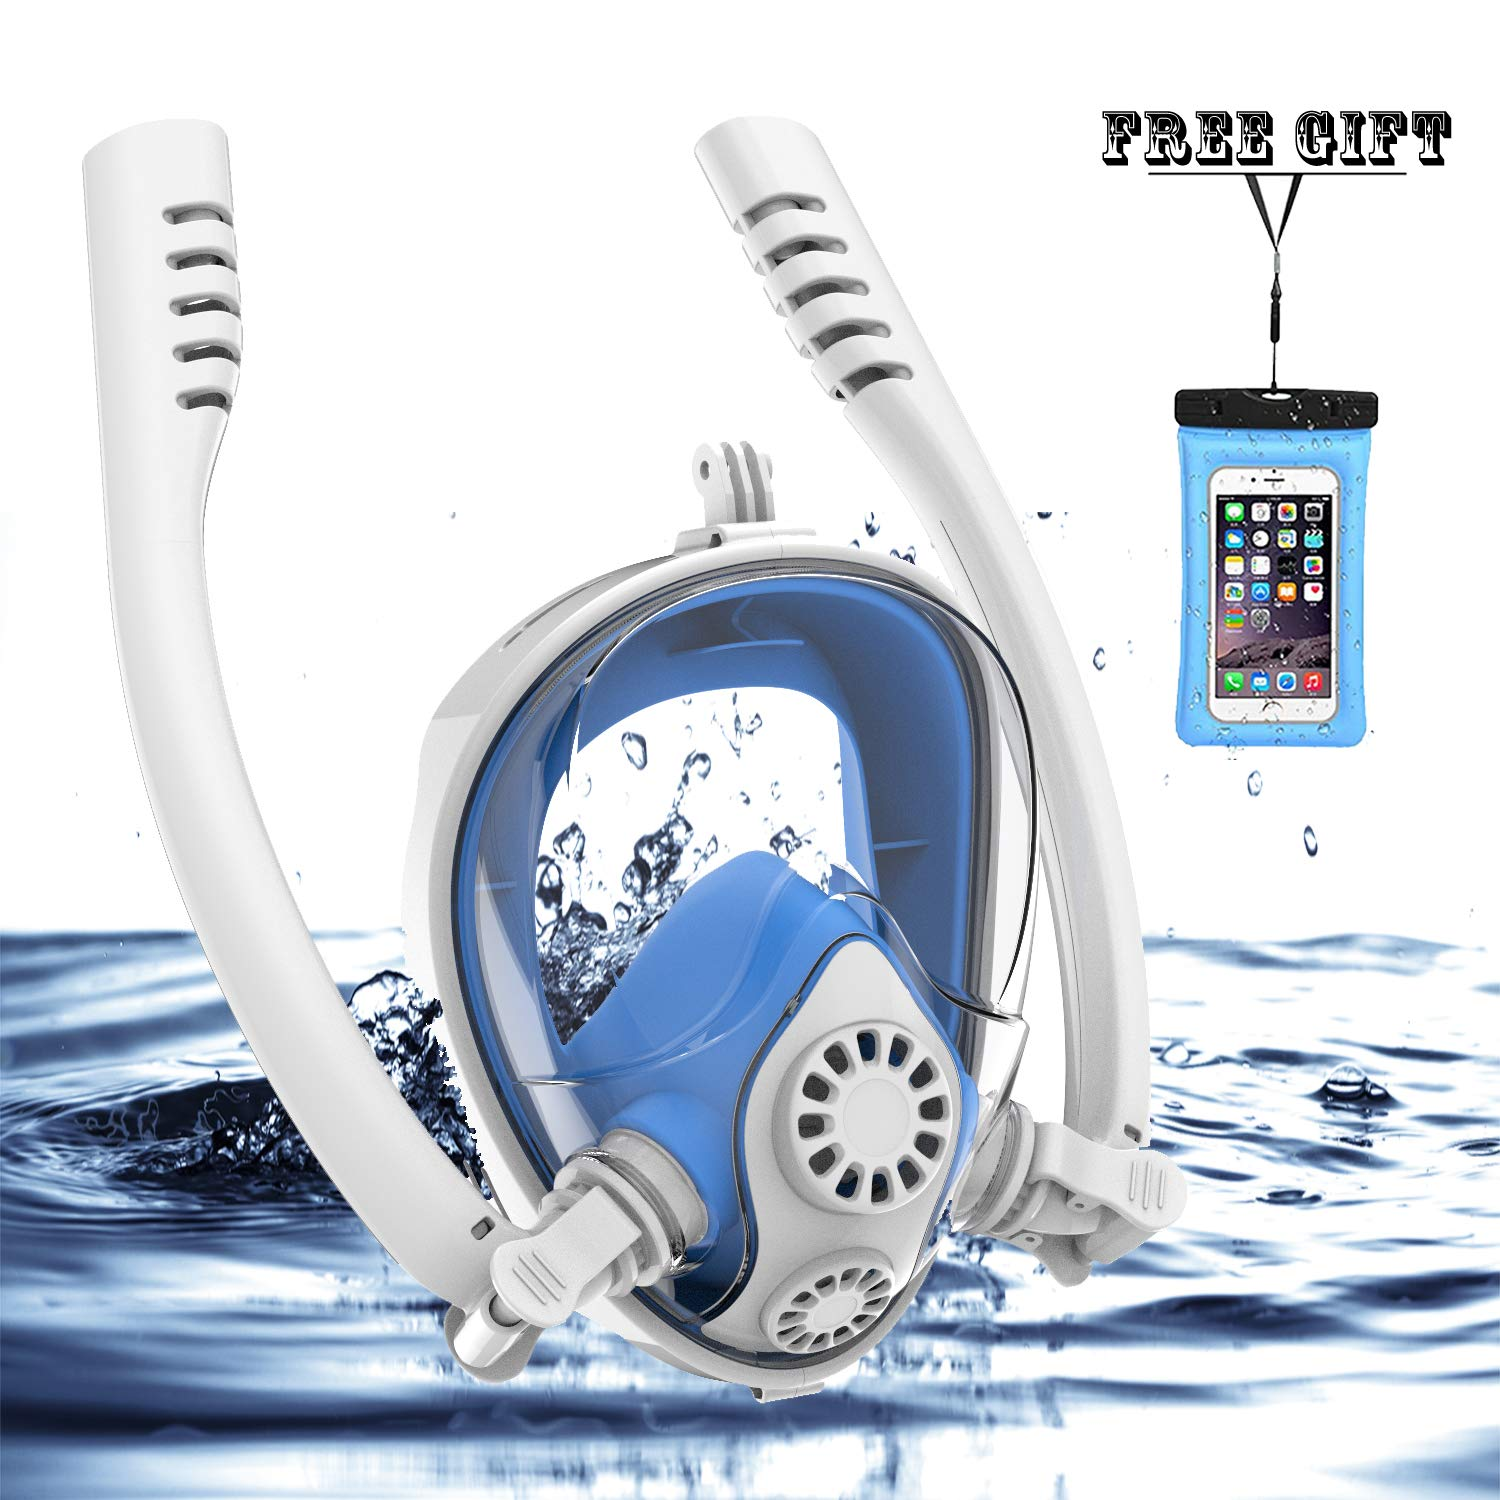 Full Face Snorkel Mask, HJKB K2 Free Breathing Snorkeling Mask with Double Tubes and 180° Panoramic Viewing, Zero Fog and Anti Leak Guarantee with Camera Mount for Adult (White + Blue, Medium Adult) by Jahuite (Image #1)